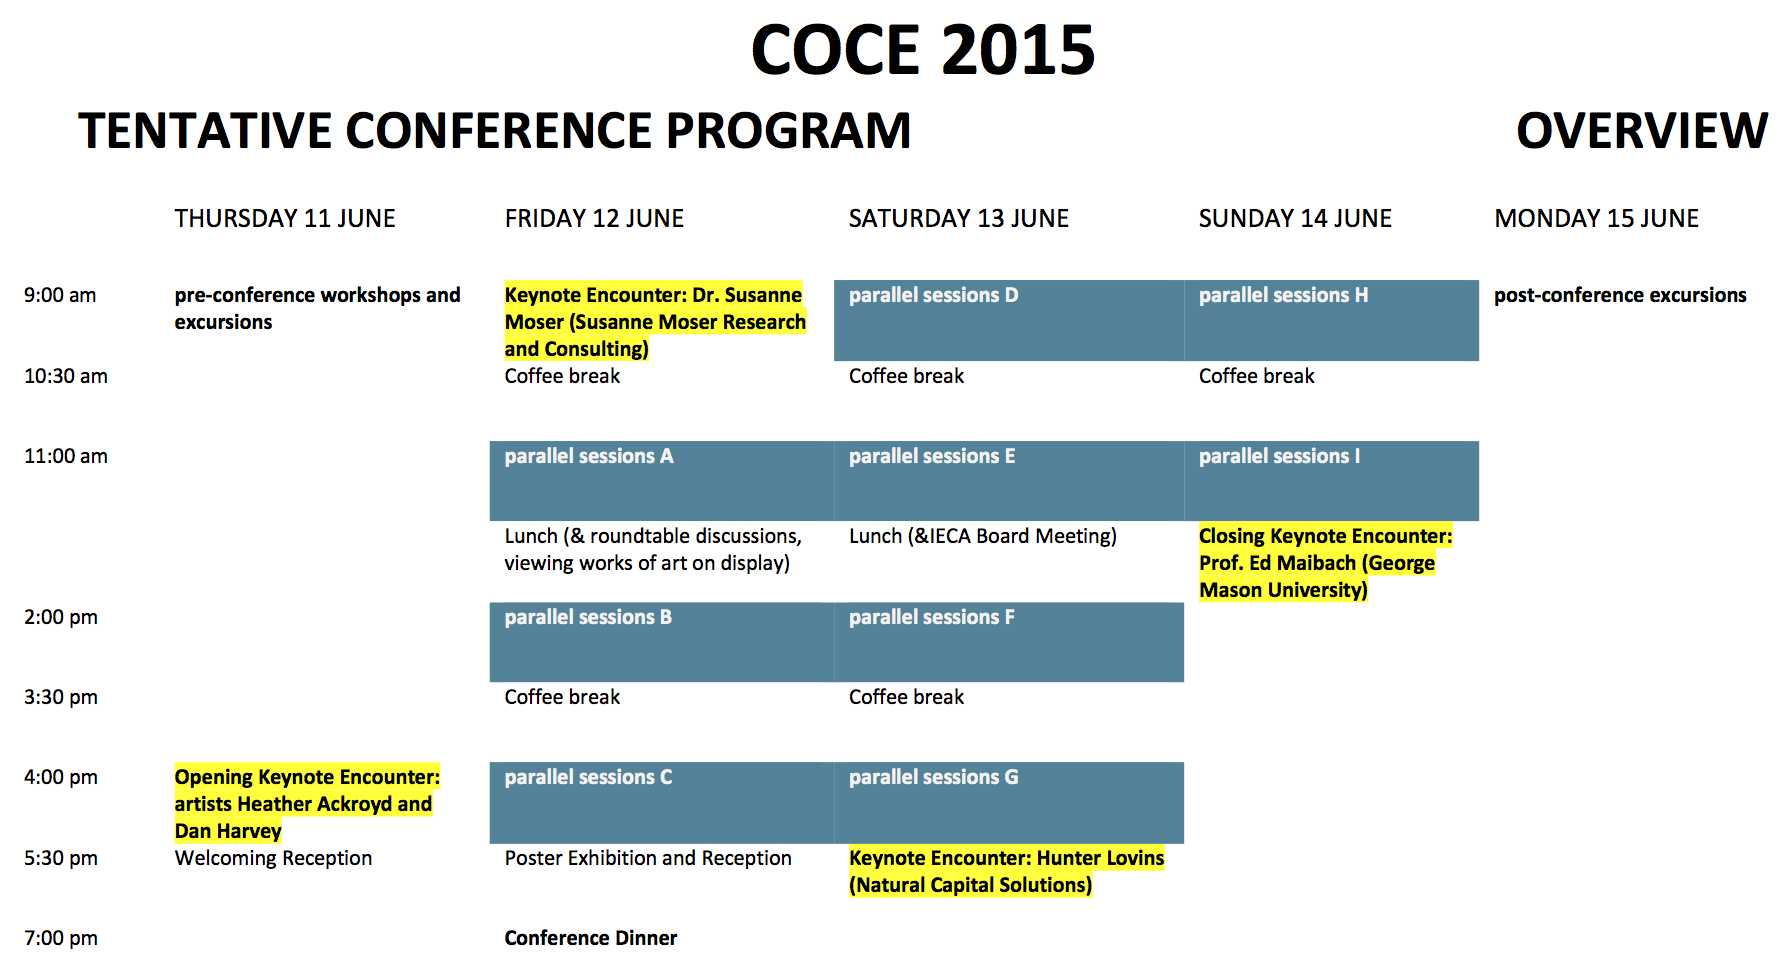 coce-2015-overview.png